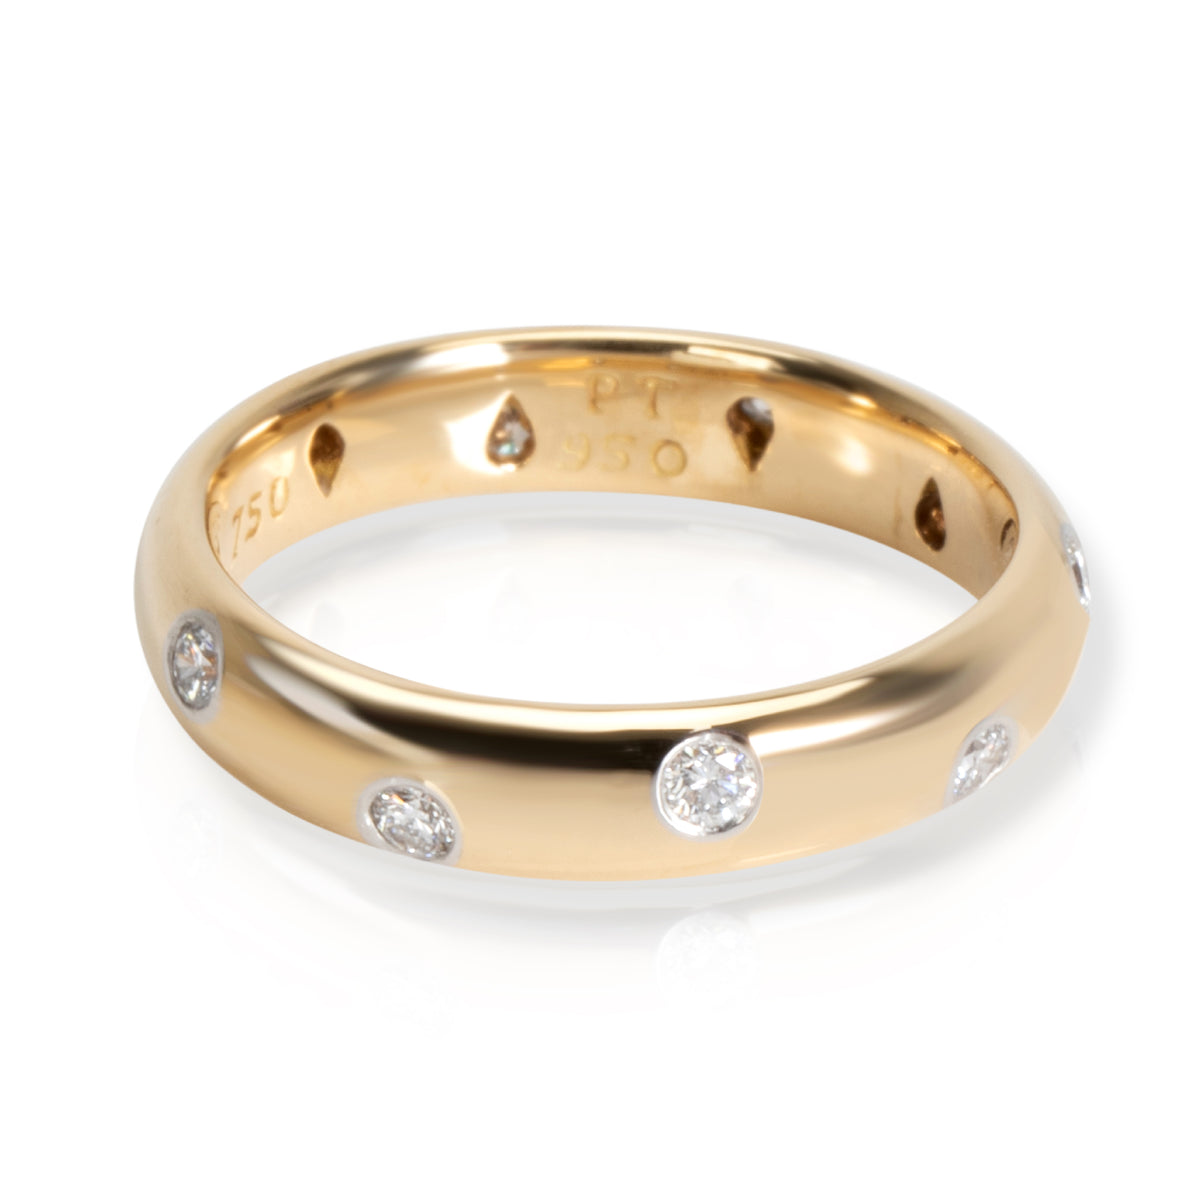 Tiffany & Co. Etoile Diamond Band in 18K Yellow Gold 0.22 CTW